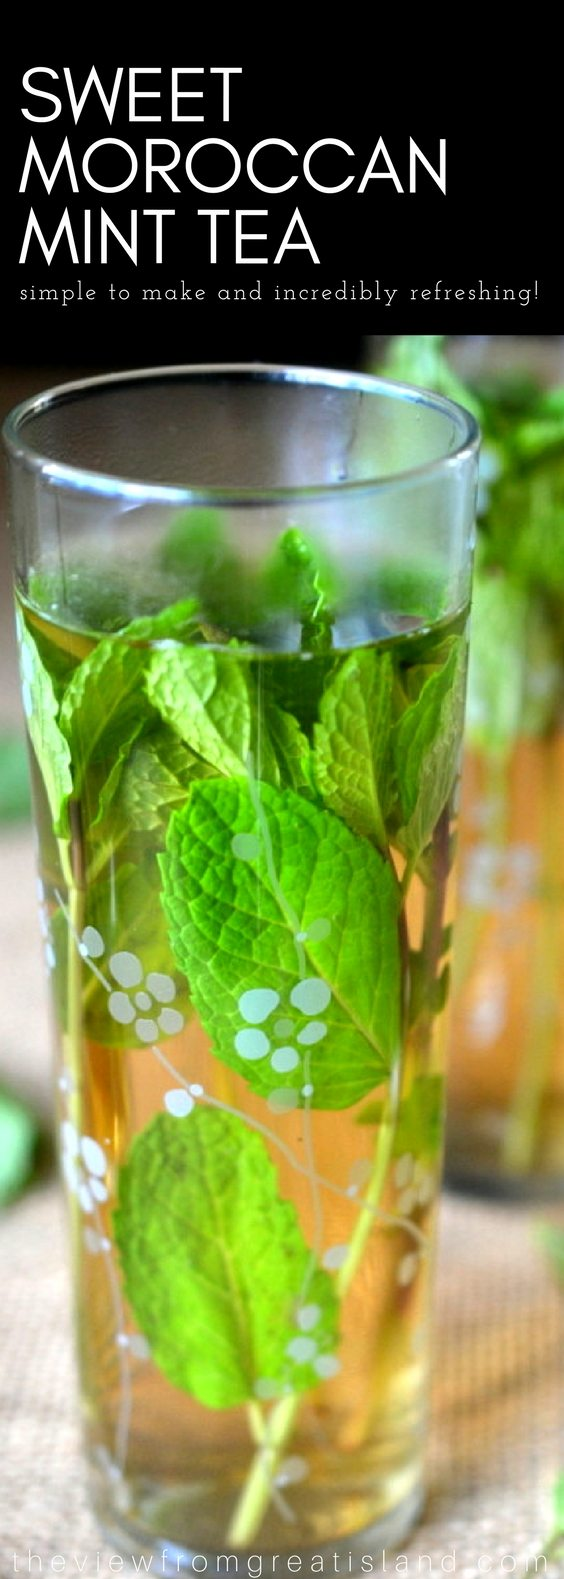 Sweet Moroccan Mint Tea (Hot or Iced) ~ this refreshing staple of North African culture is easy to make and incredibly refreshing. #minttea #tea #moroccan #icedtea #mint #beverage #summerdrink